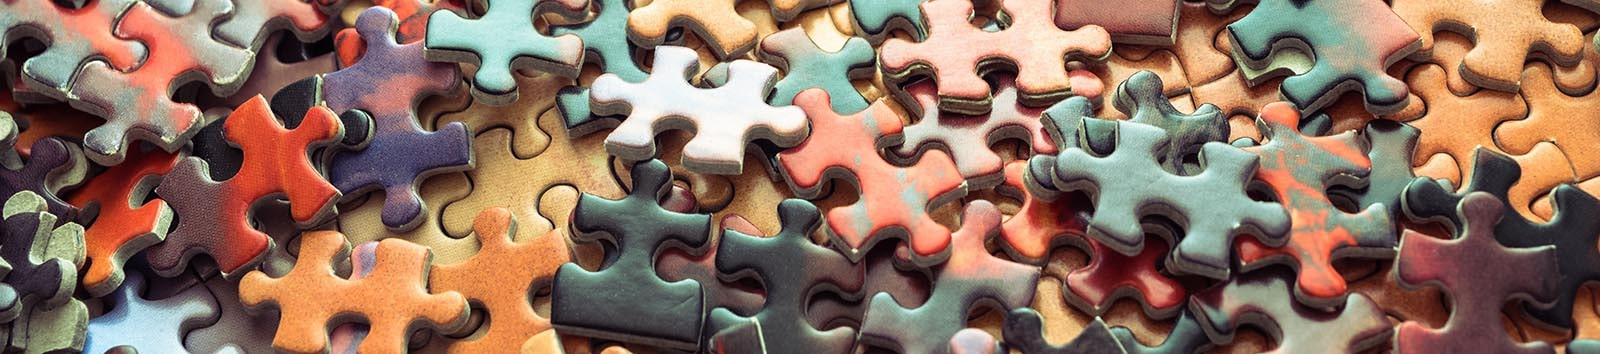 Jigsaw Puzzle Collection